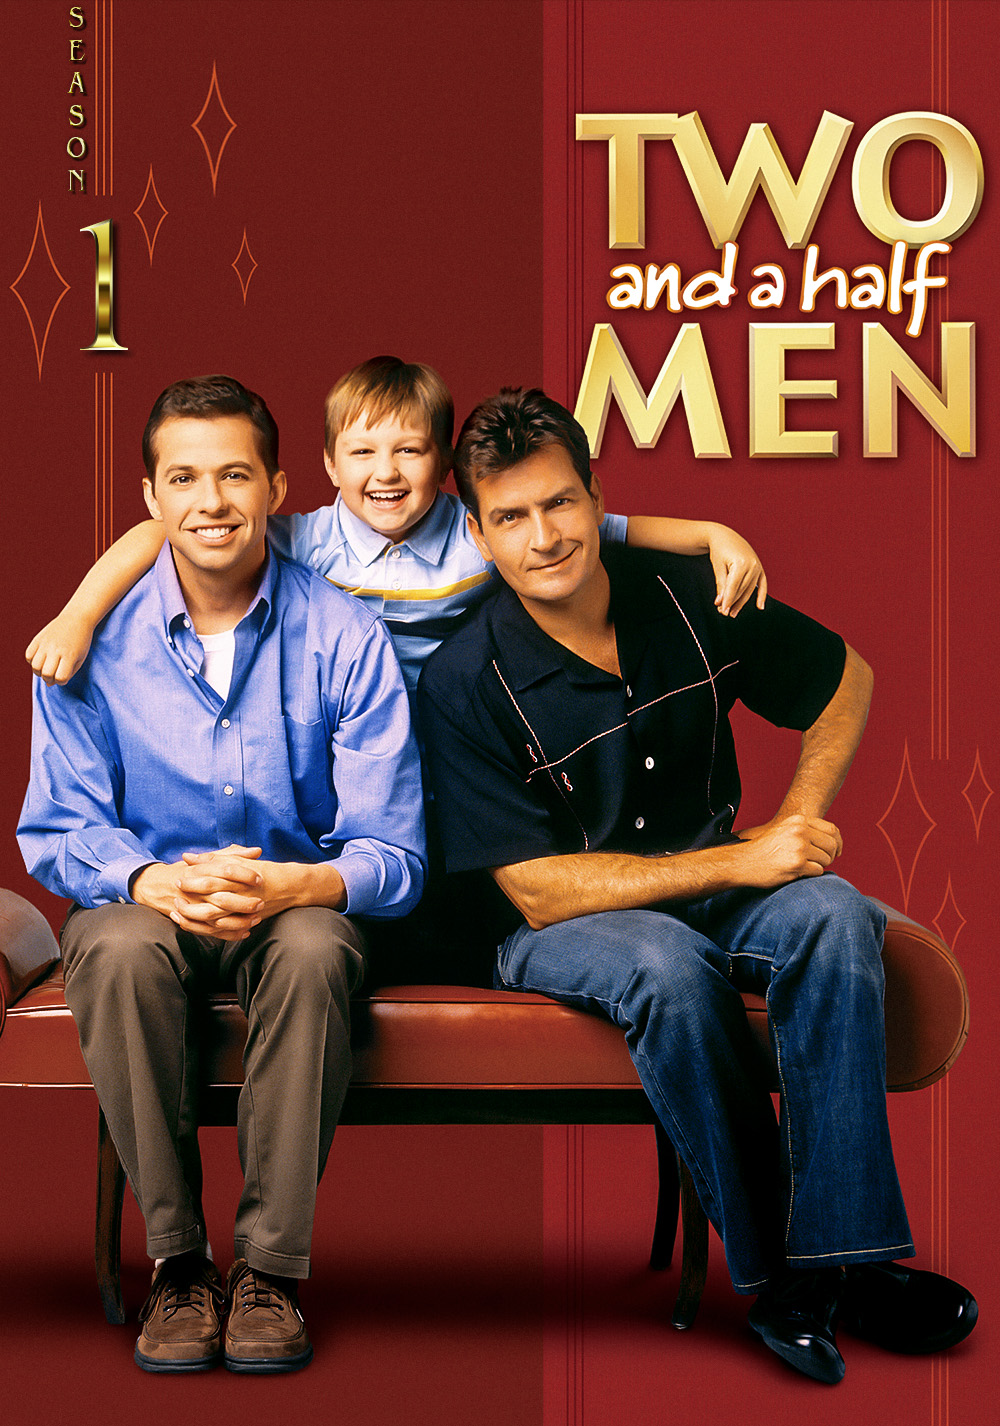 Two And Half Men|T01|Lat-Ing|1080p|Max Calidad|x265 10bit Season01-poster